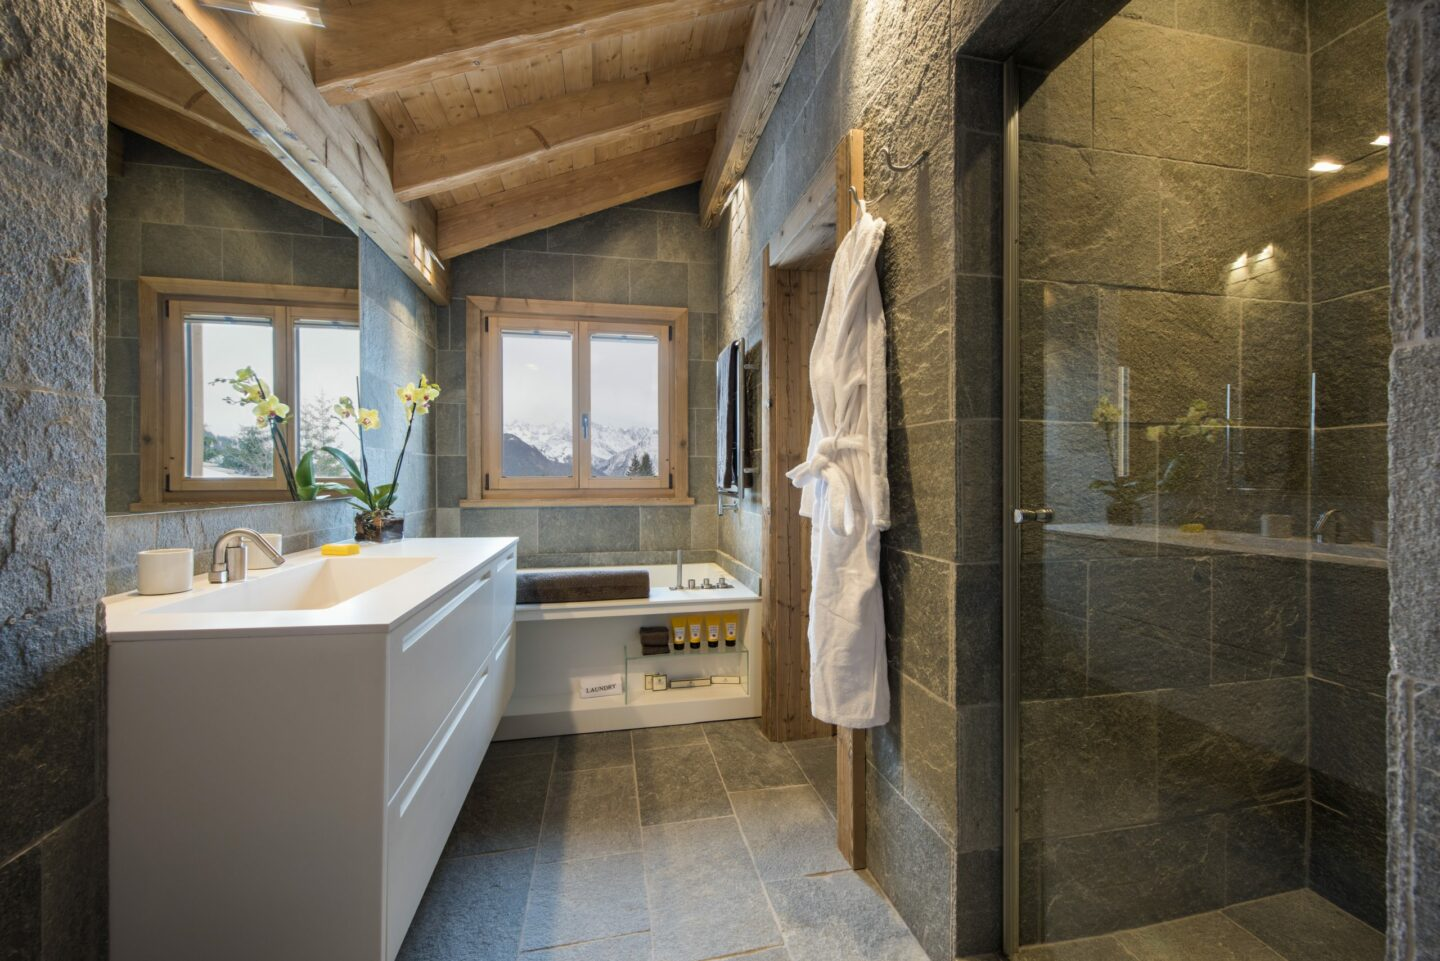 Bathroom at Chalet Delormes with shower in Verbier